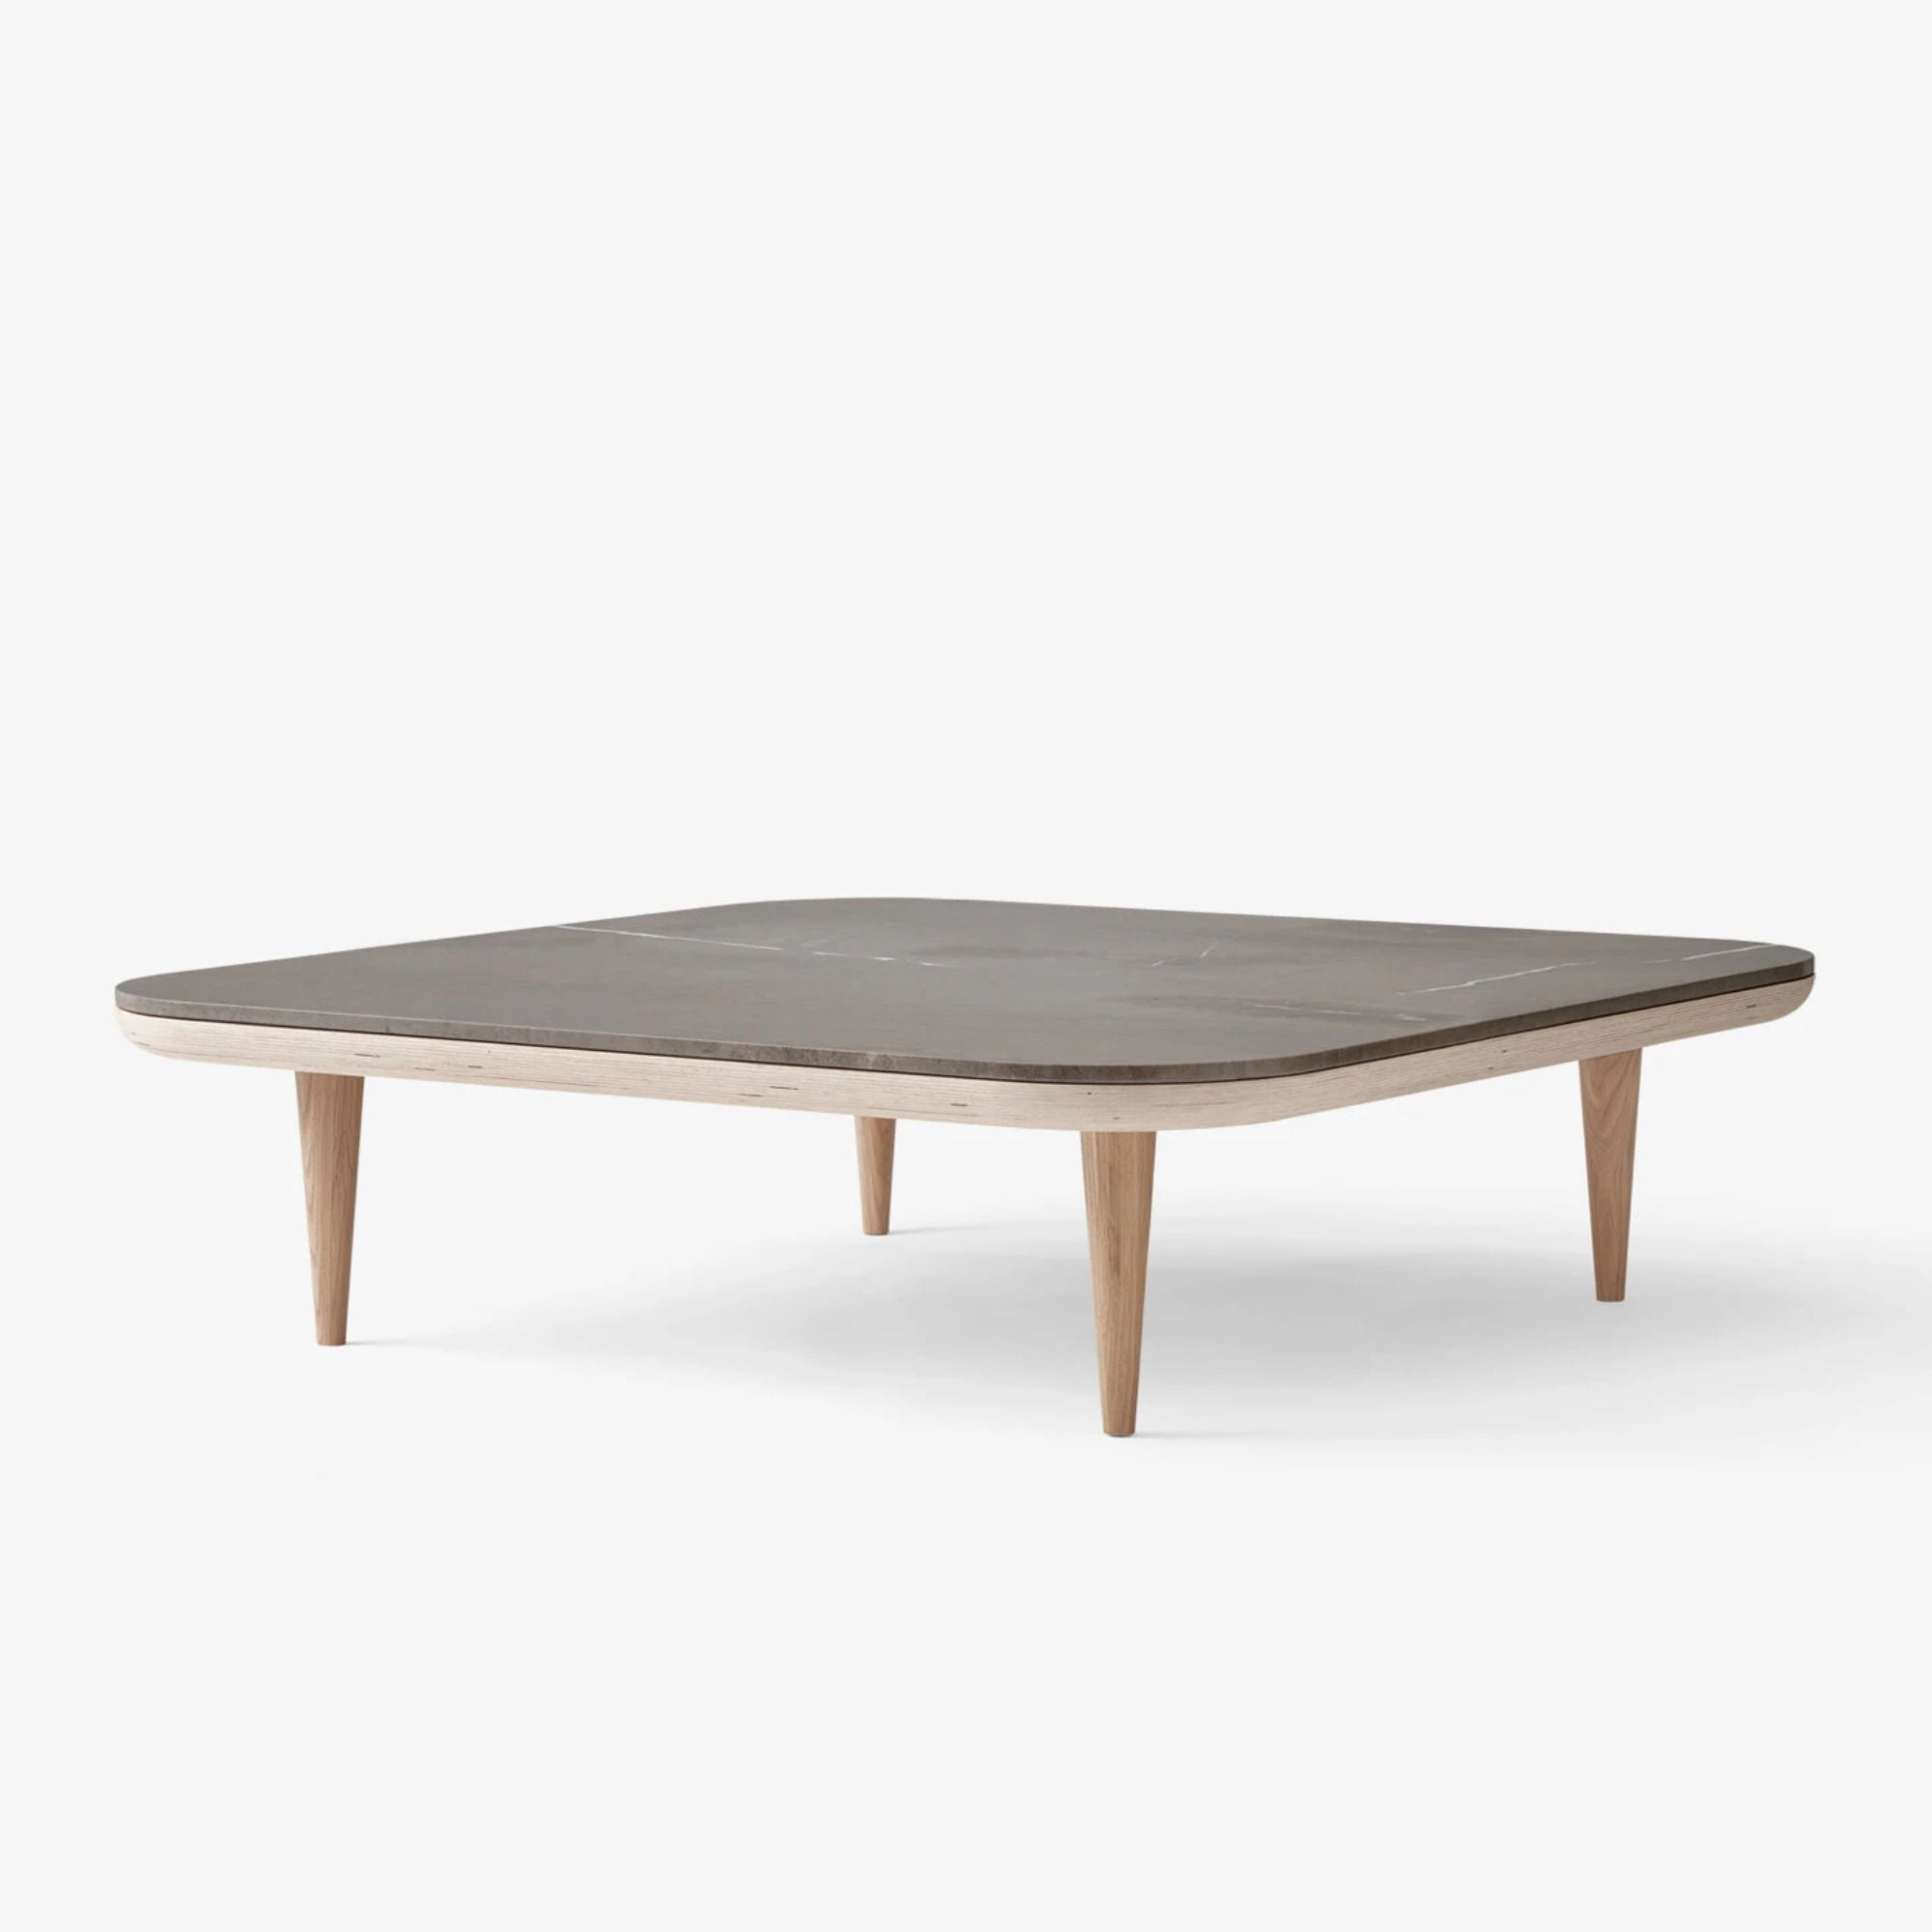 &Tradition SC11 Fly Coffee Table , White Oiled Oak-Honed Azul Valverde Marble